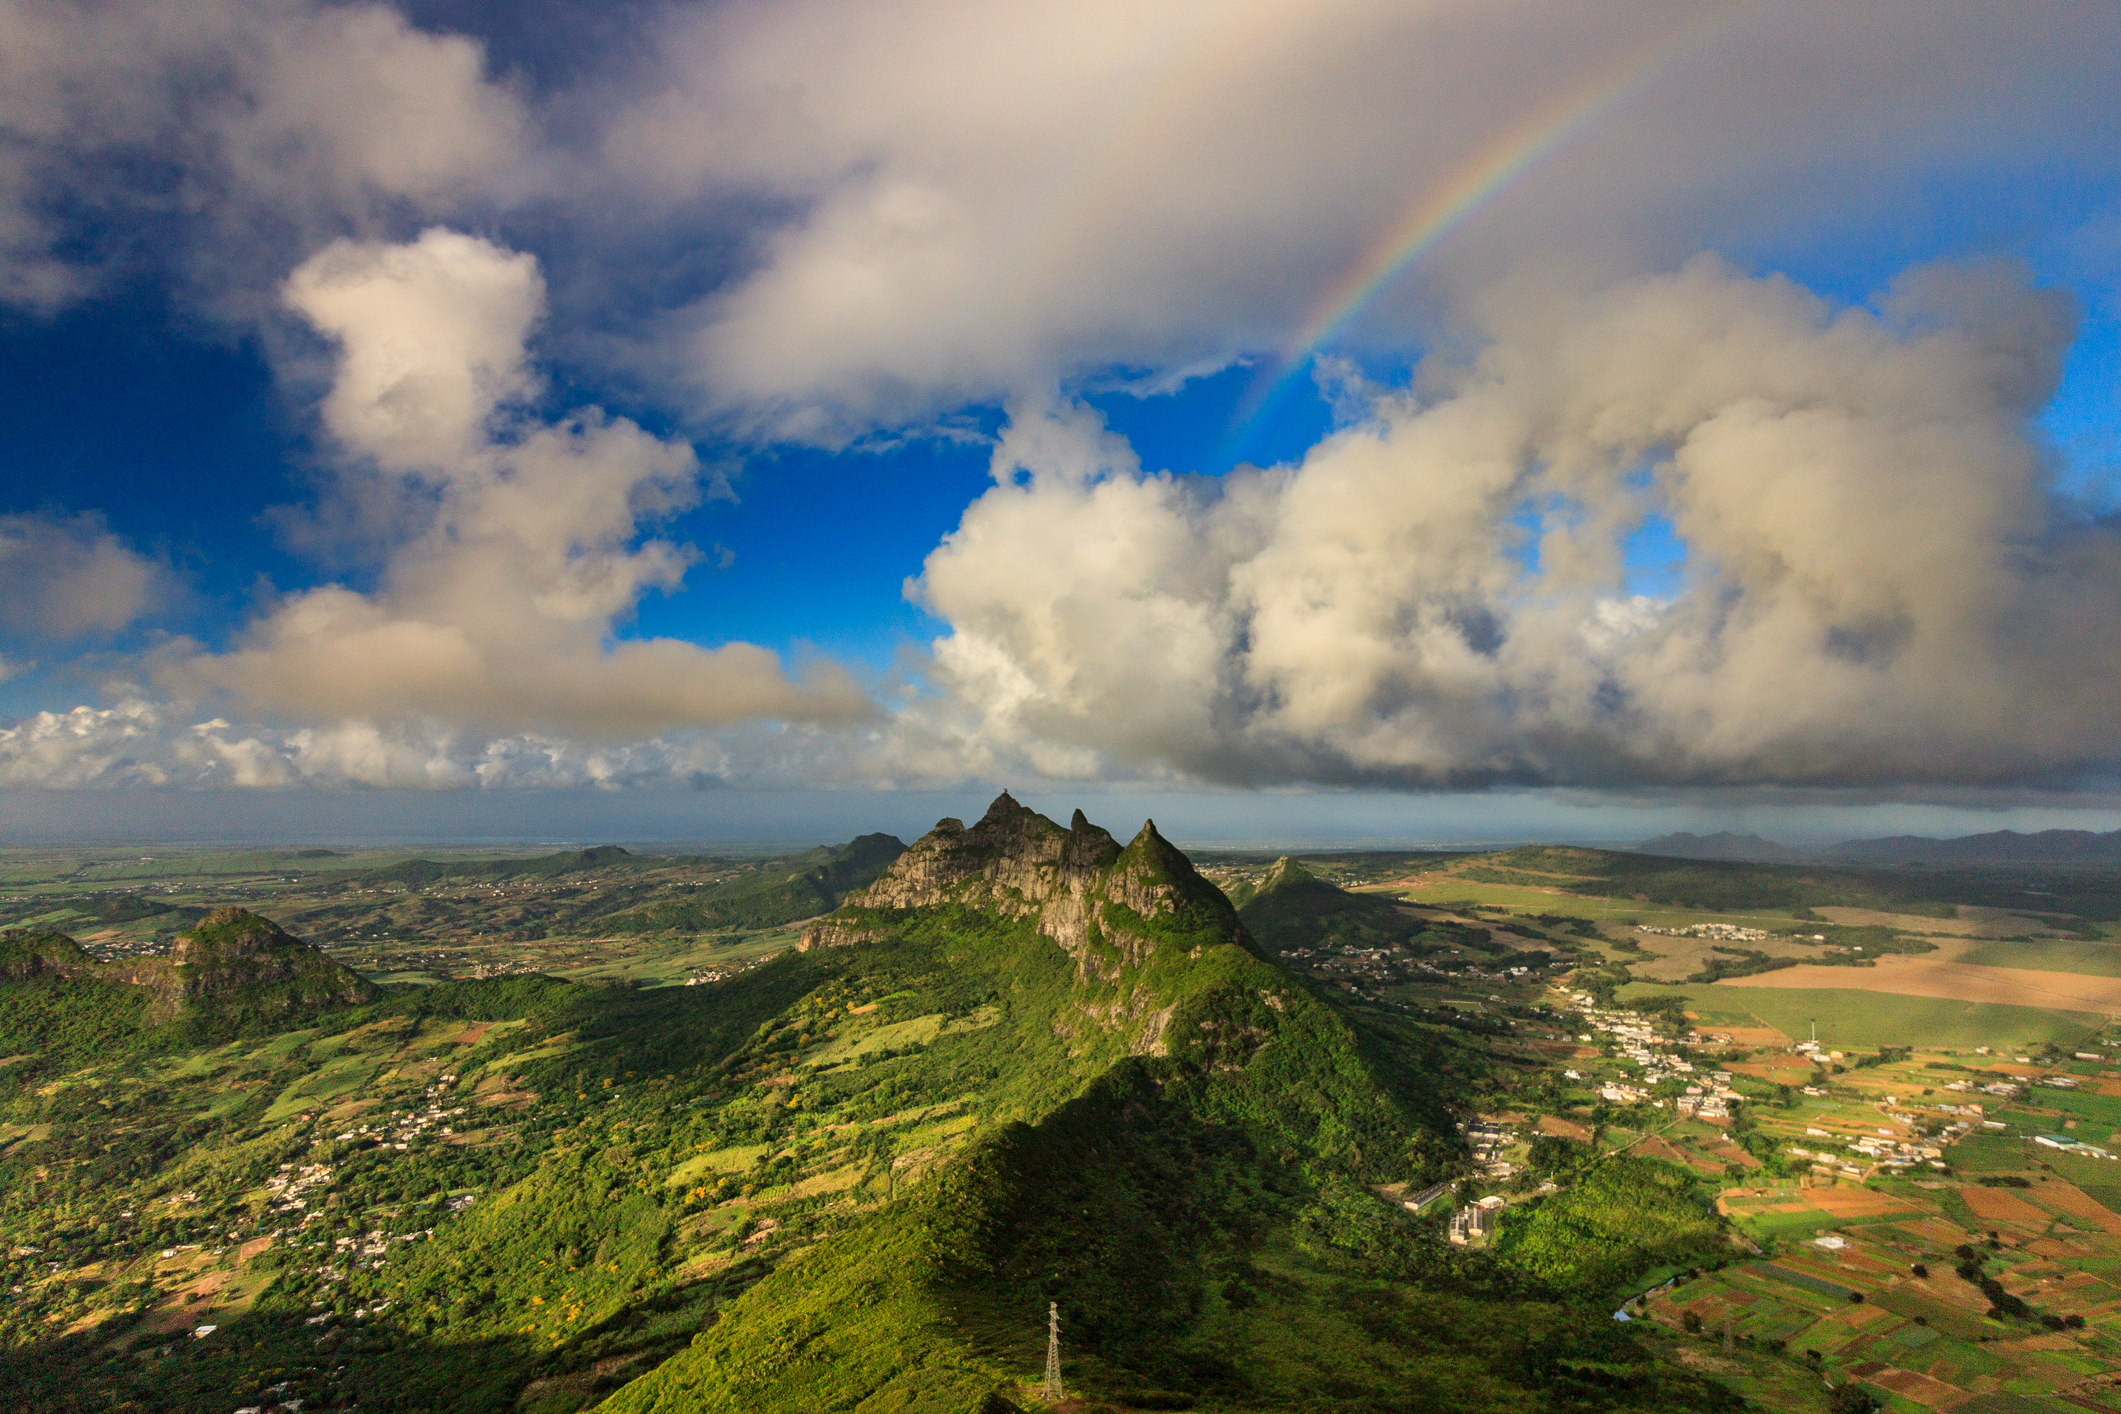 Rainbow as seen from Le Pouce, Mauritius